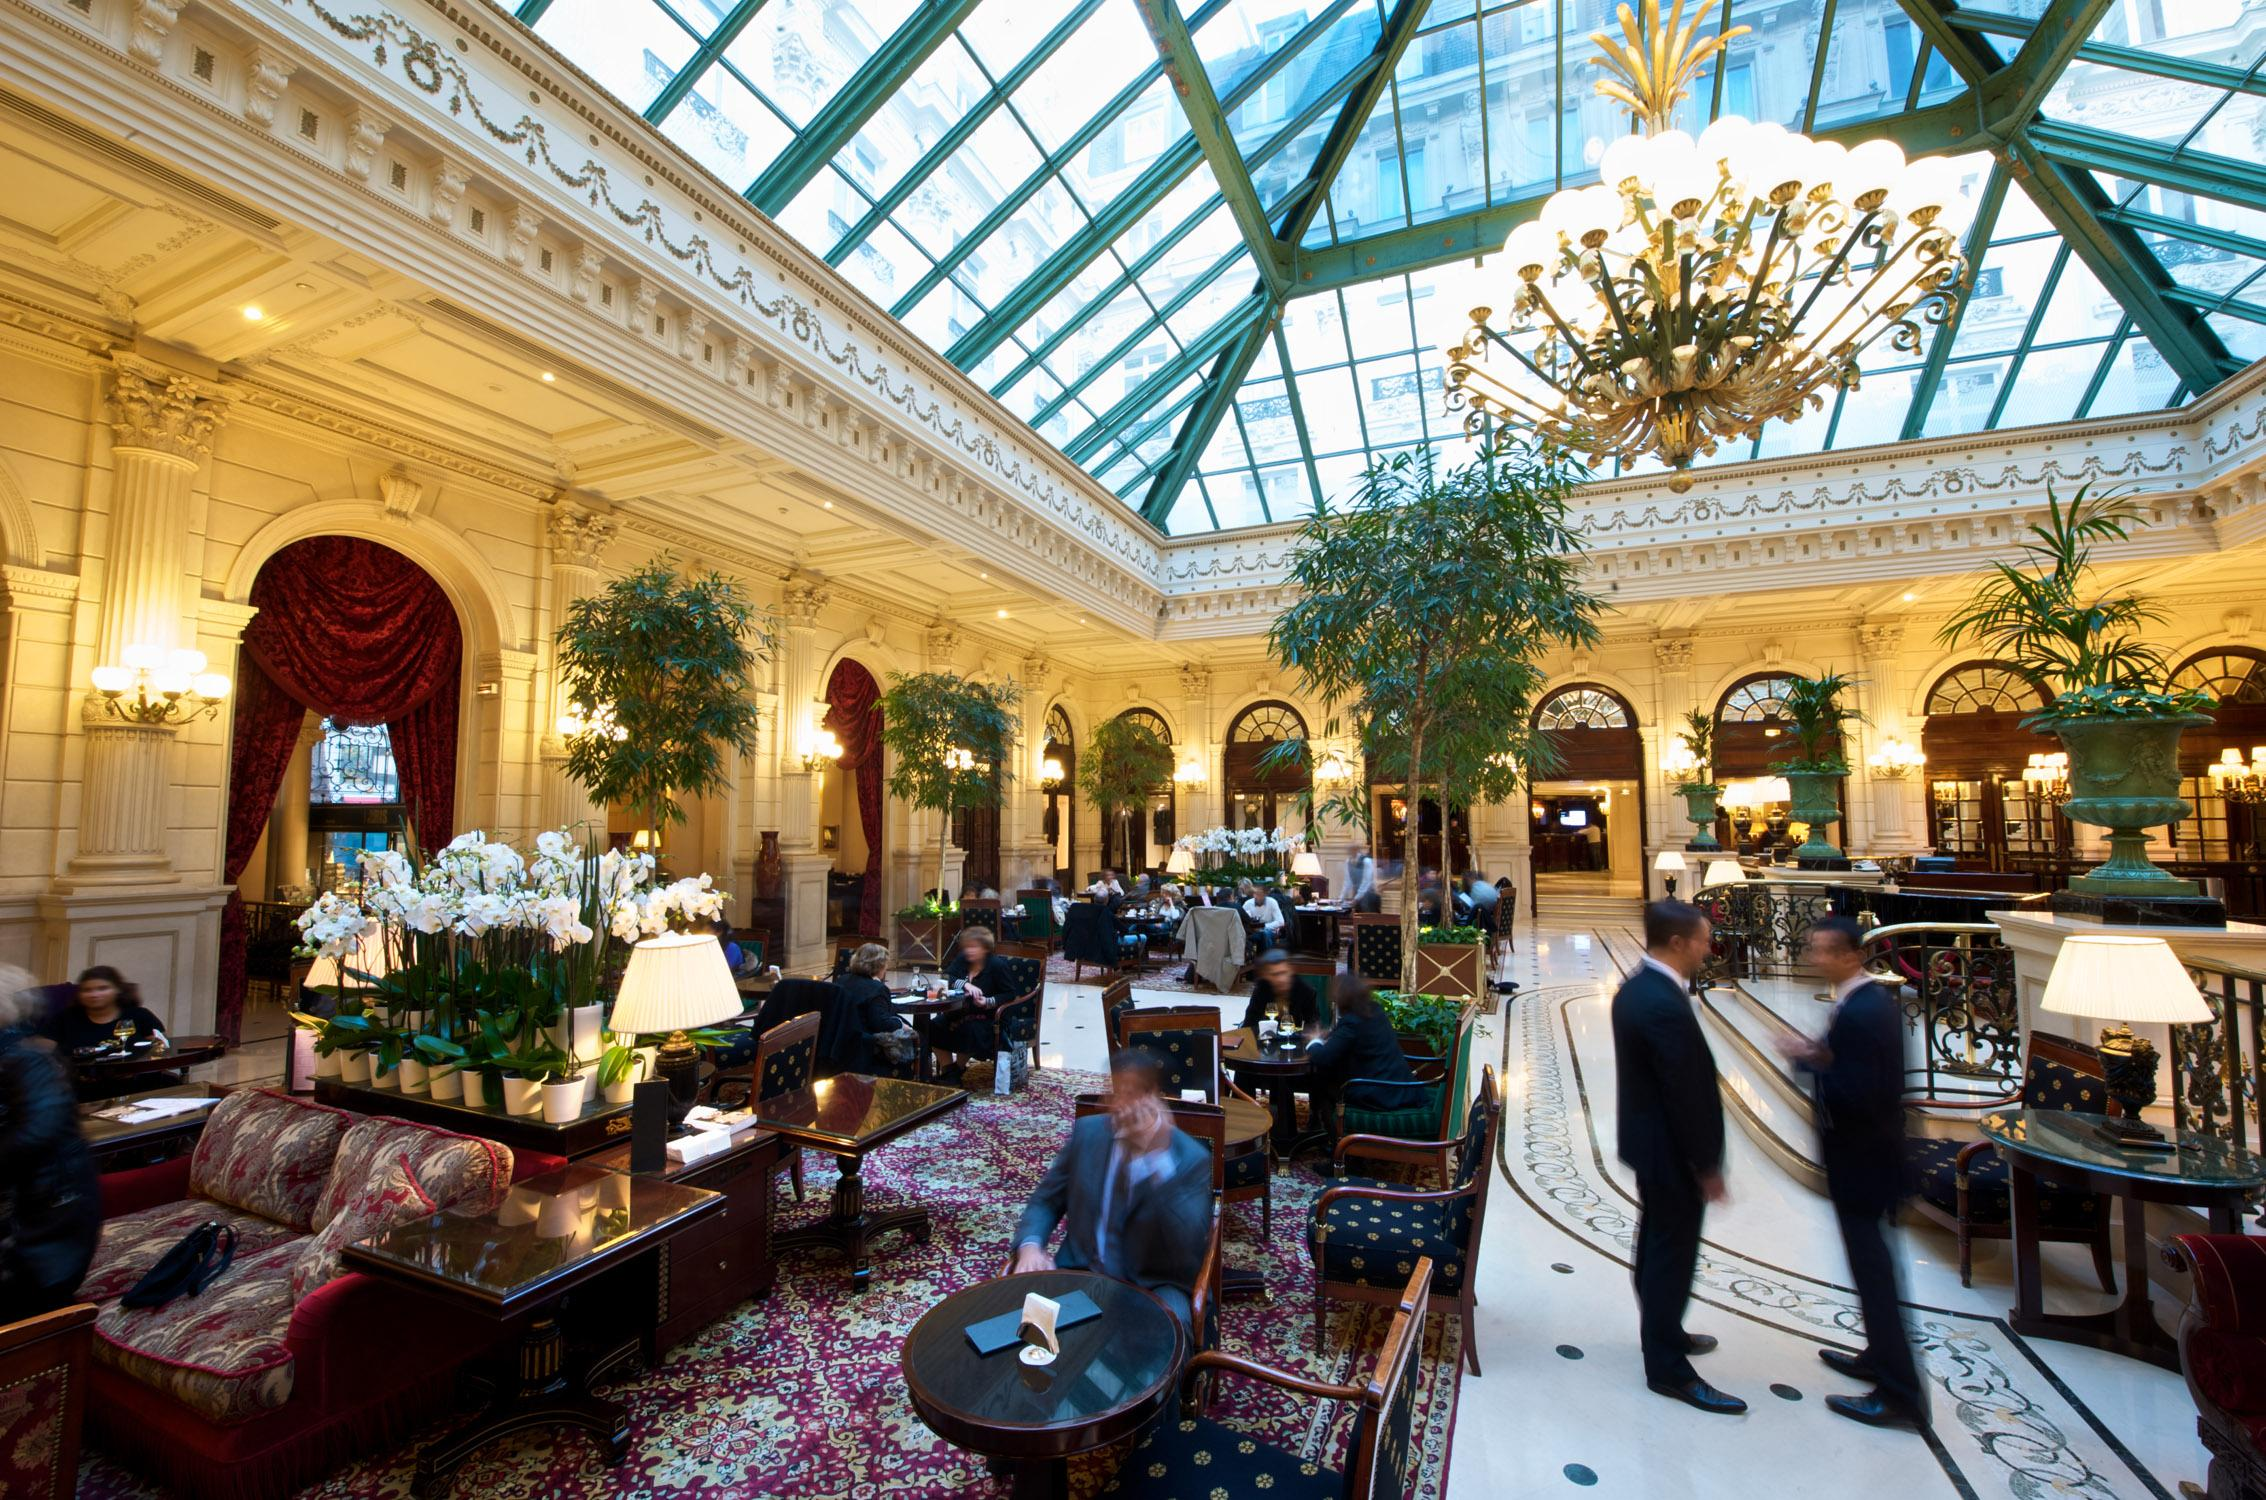 Ihg Receives Binding Offer For Intercontinental Paris Le Grand From Constellation